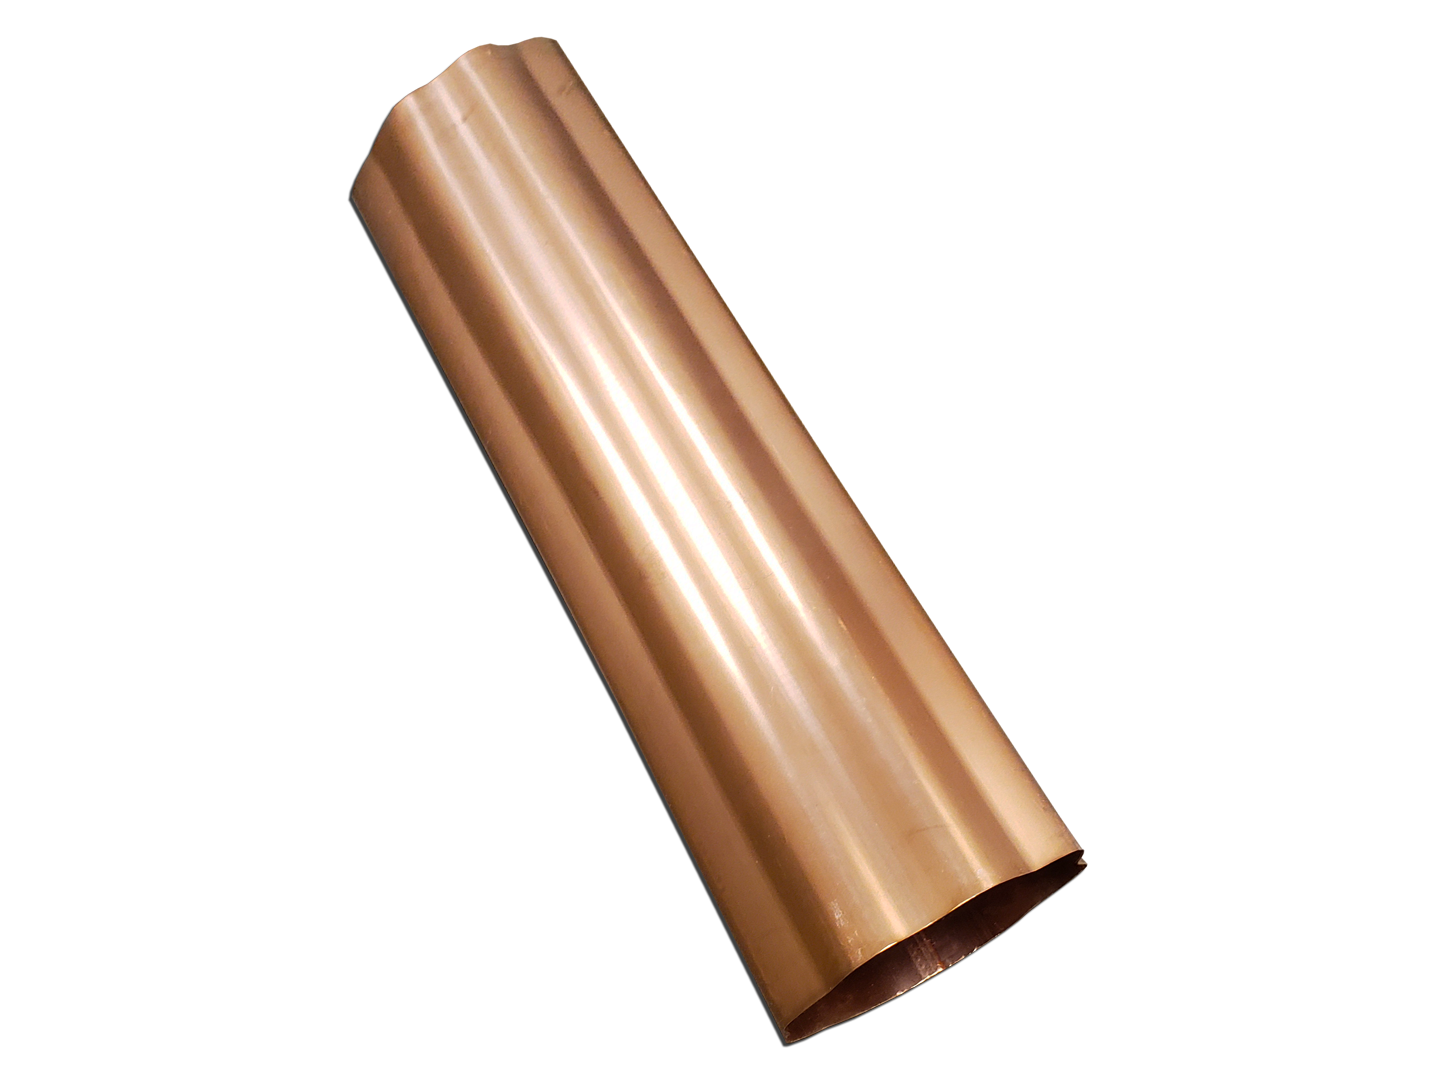 Downspouts - Square, Round, Plain, Corrugated, Smooth